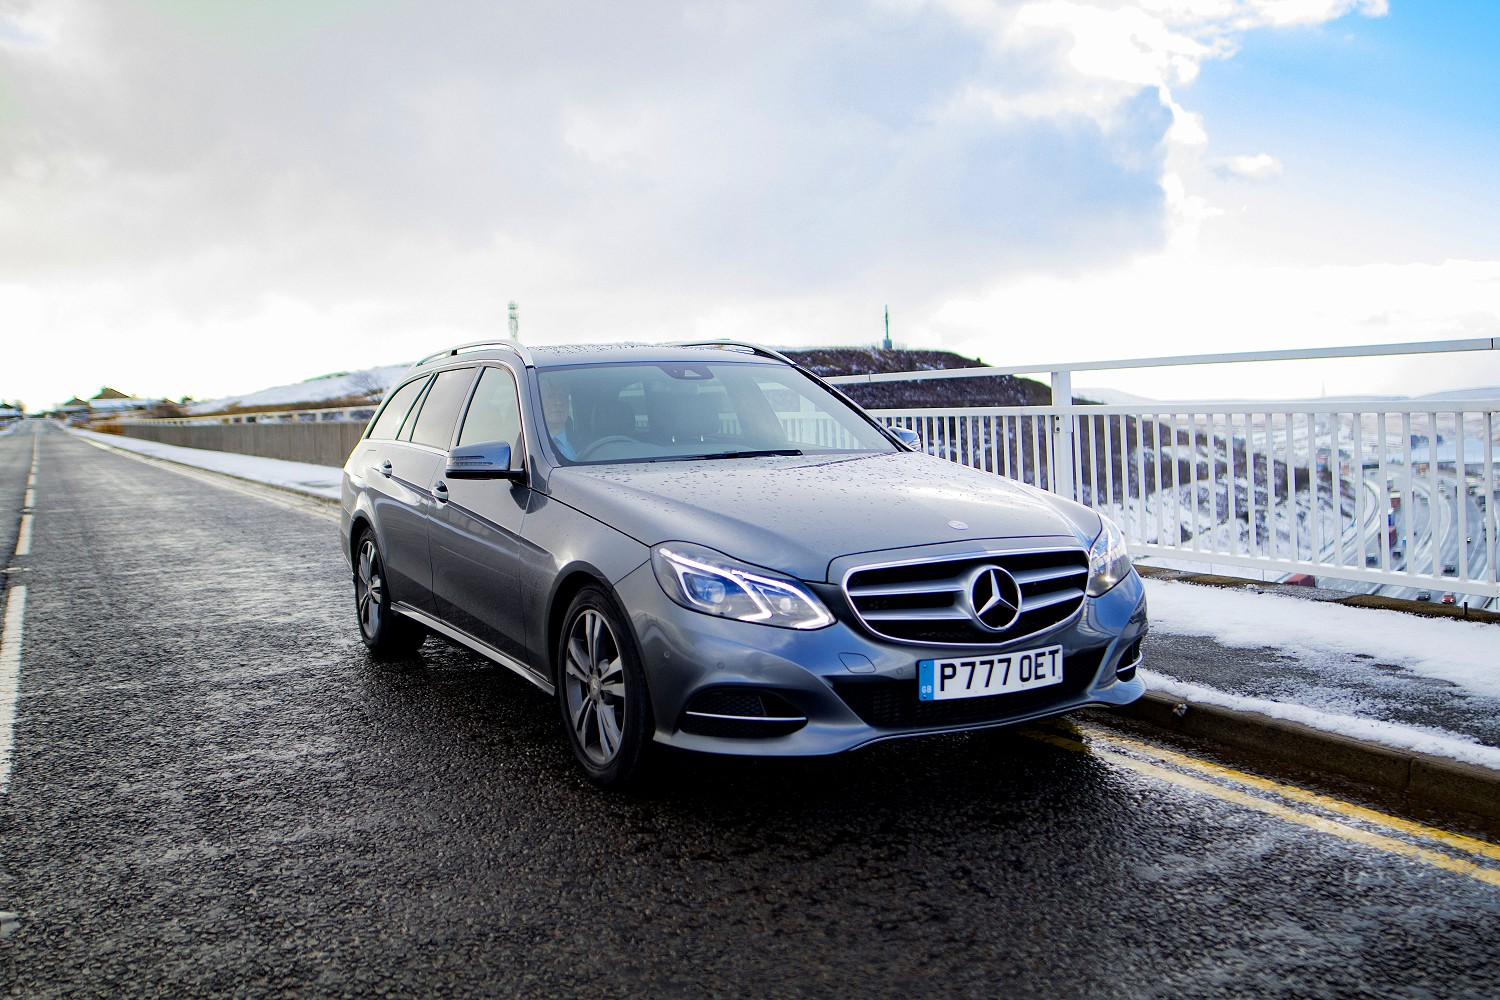 Chauffeured Mercedes Hudderfield